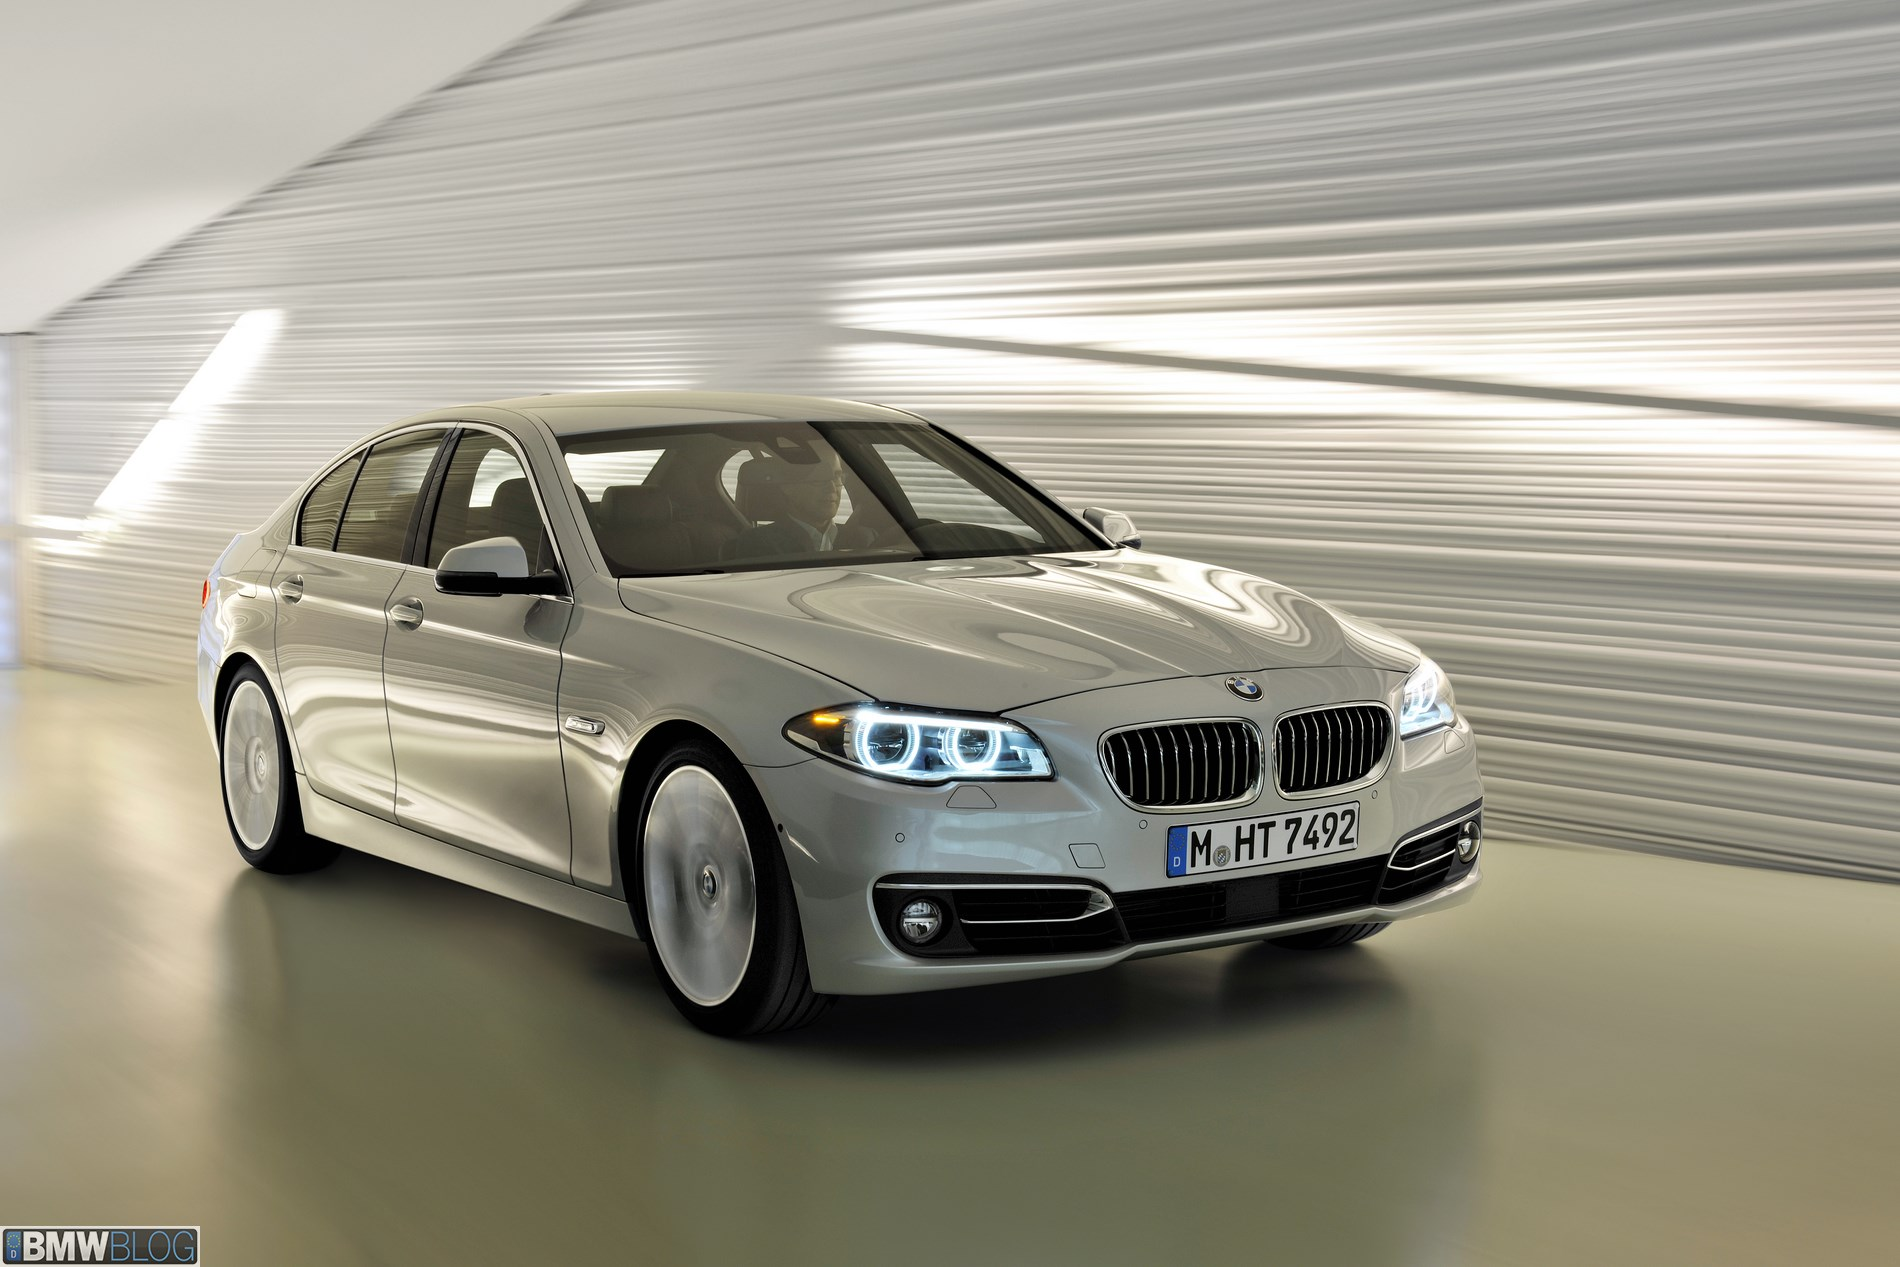 BMW 5 series 550i 2013 photo - 7